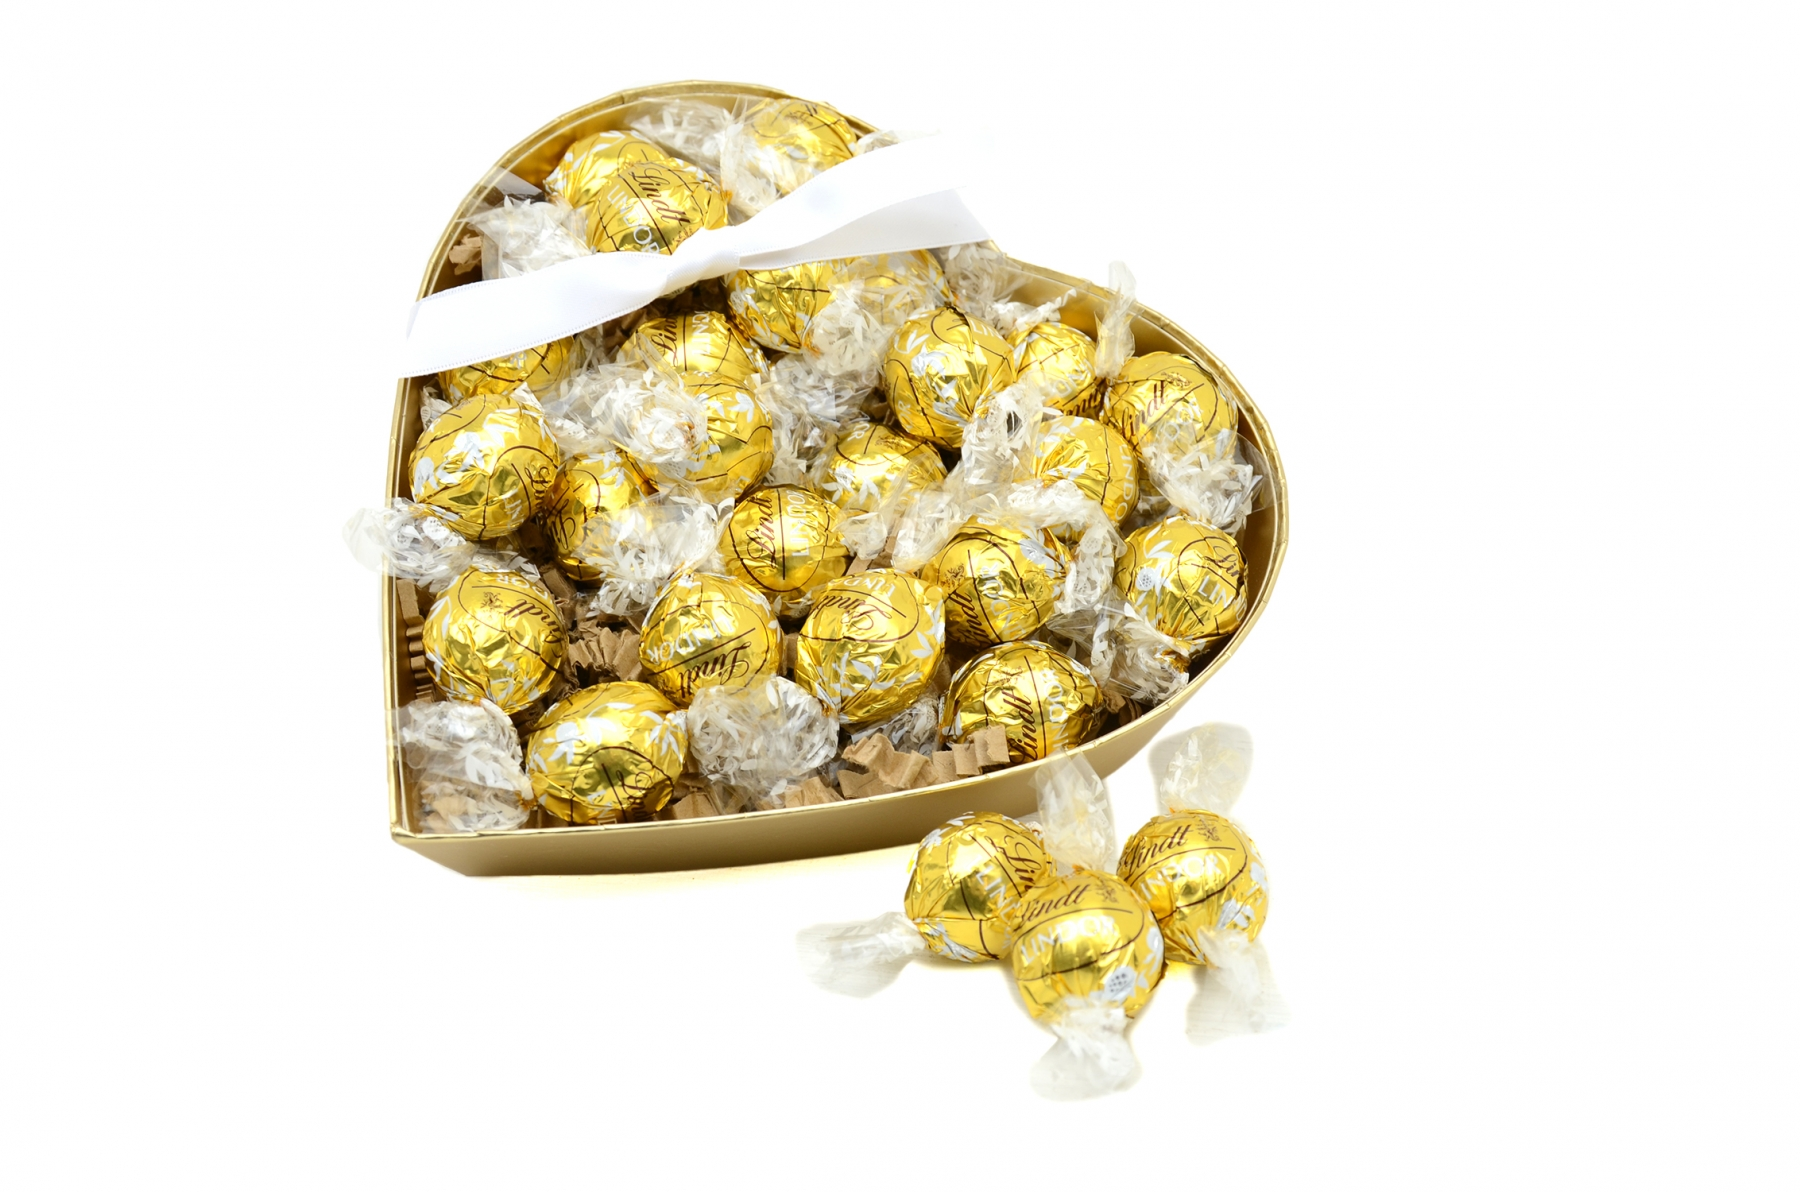 Lindt Lindor Lovers gift box - Gold